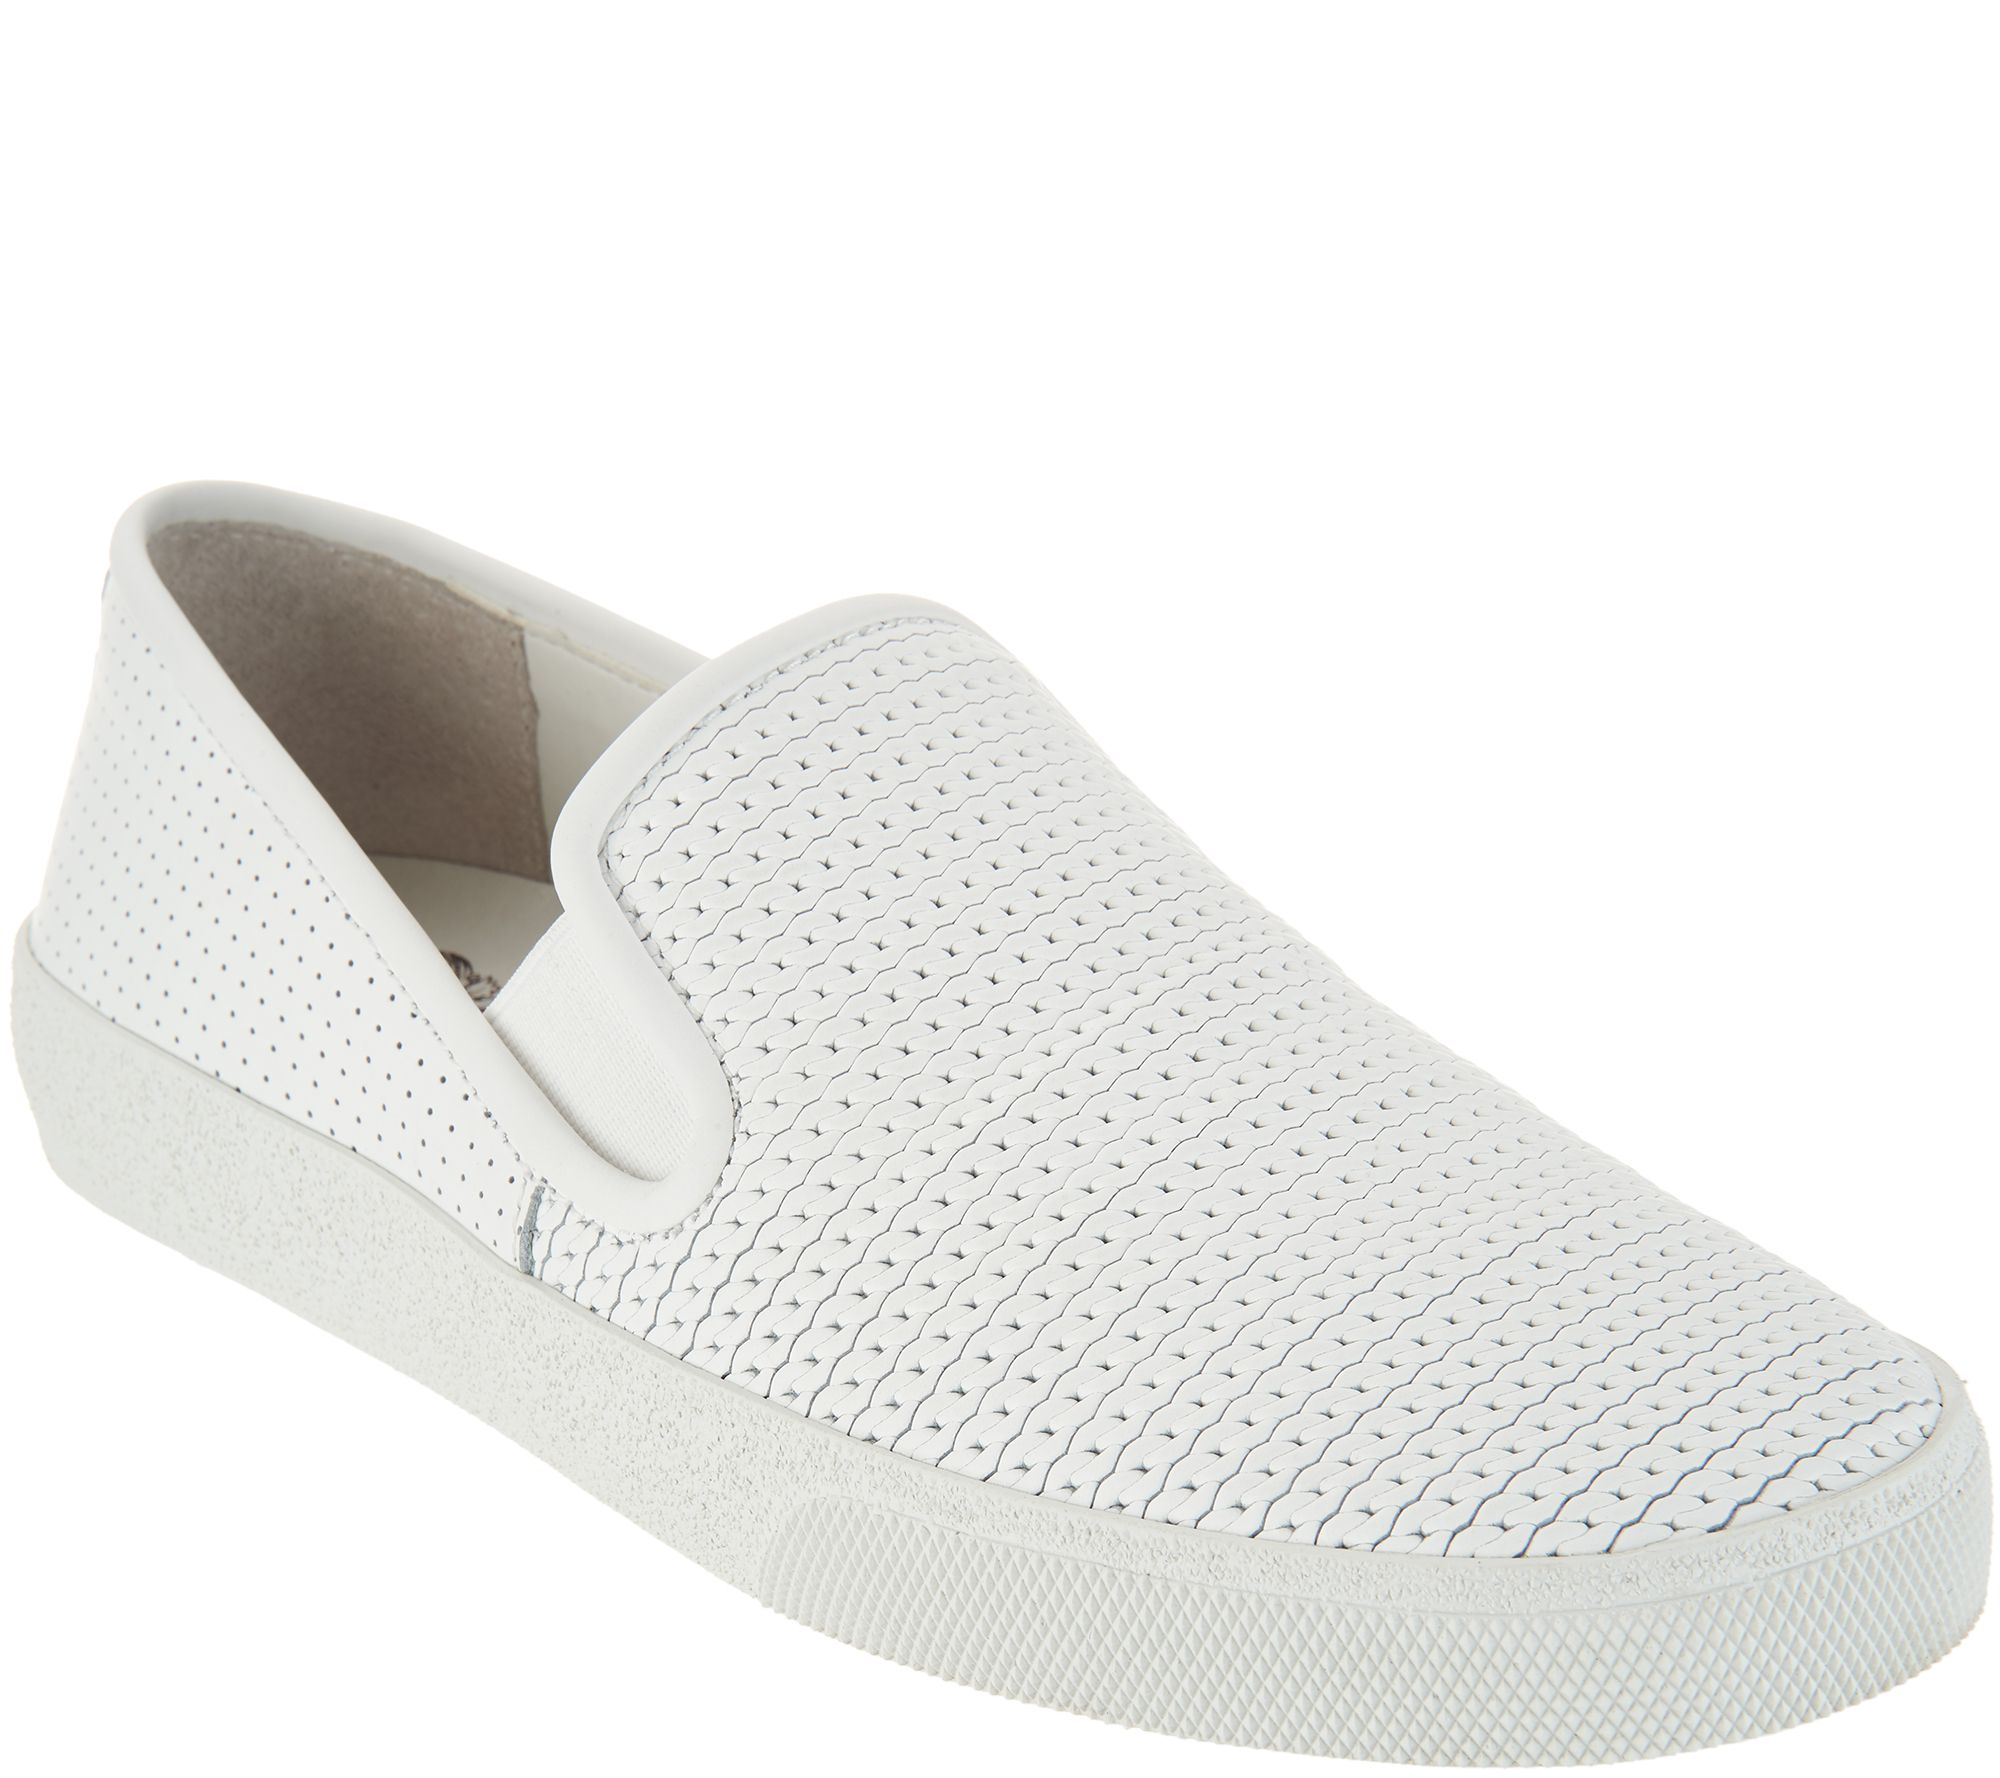 Vince Camuto Cariana Textured Slip-On Sneakers q0svPzGFK3